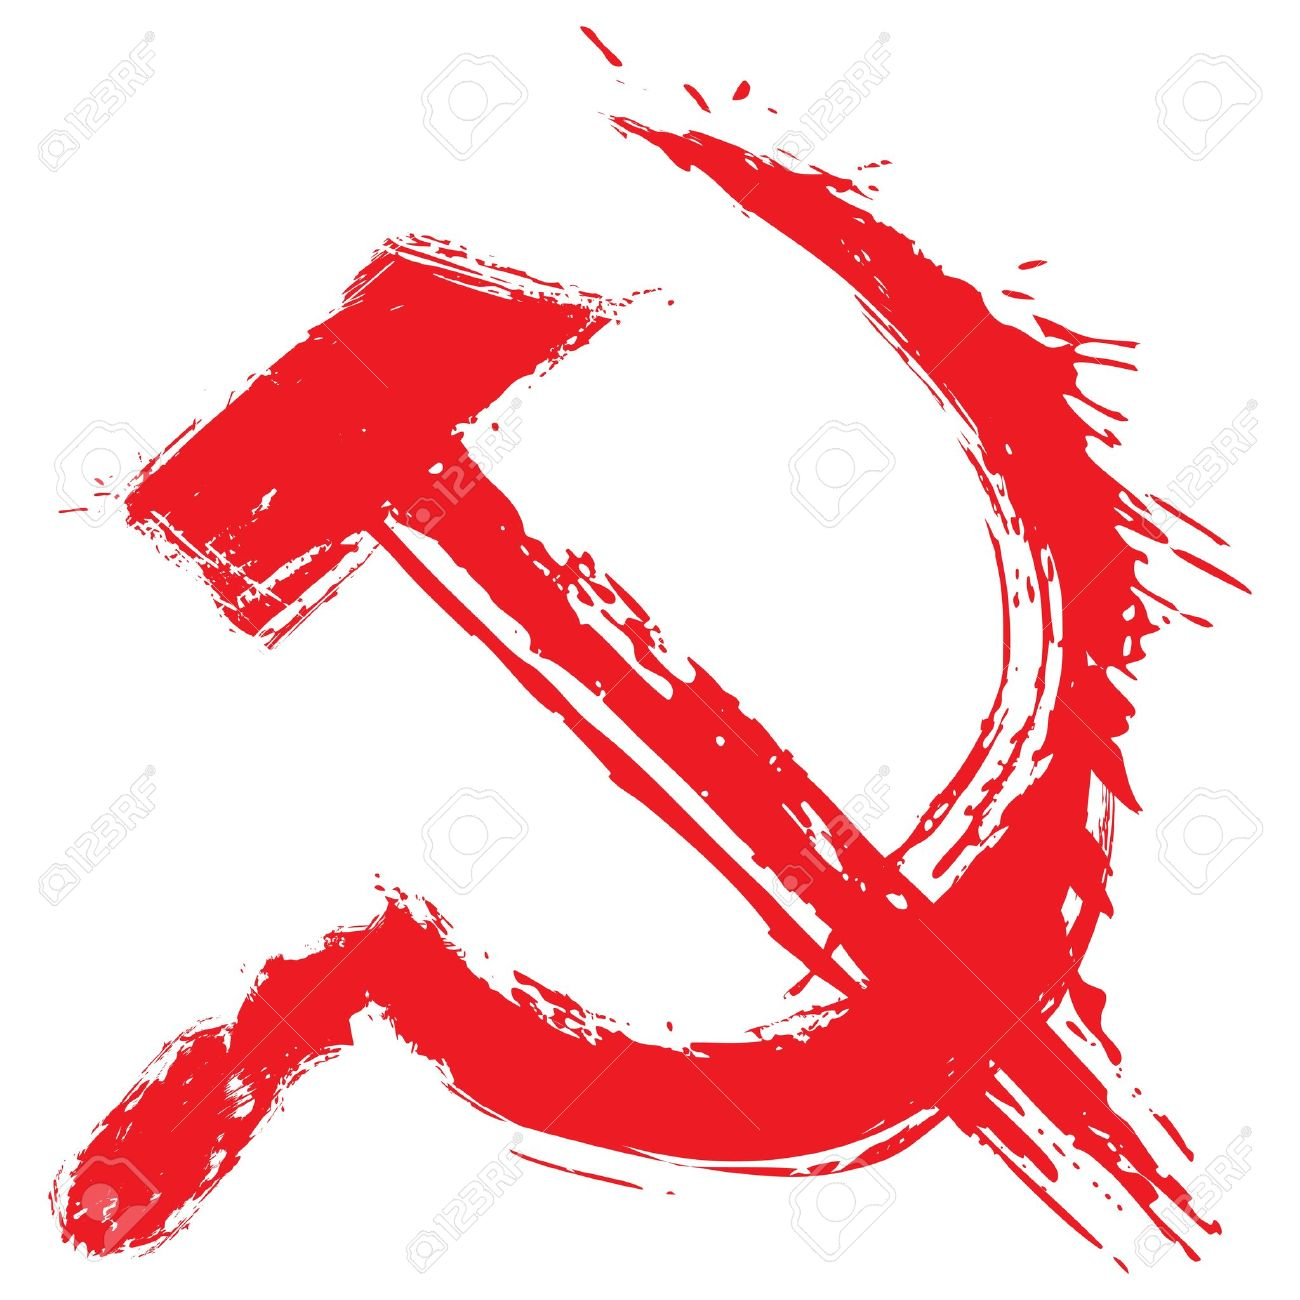 Communism Symbol Royalty Free Cliparts, Vectors, And Stock.